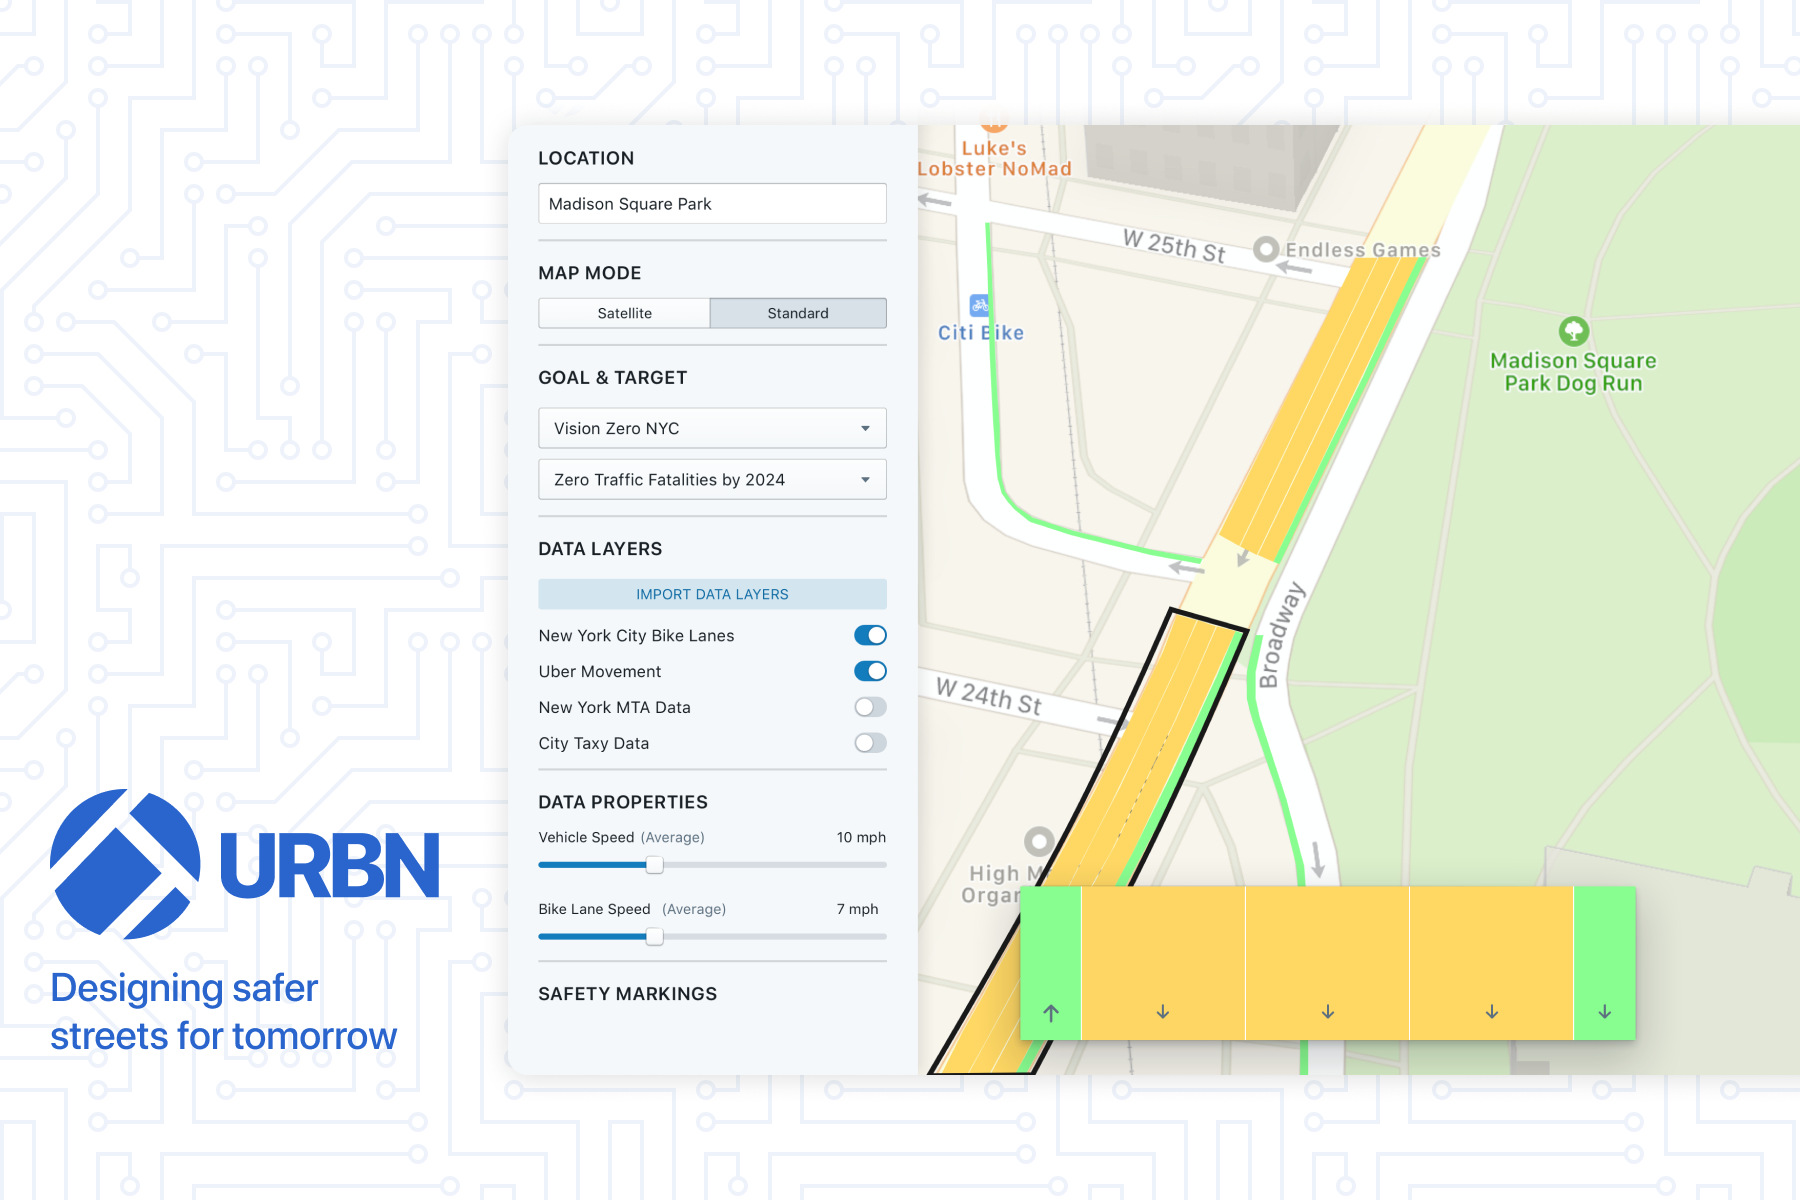 URBN An urban design tool powering the development of safer streets.